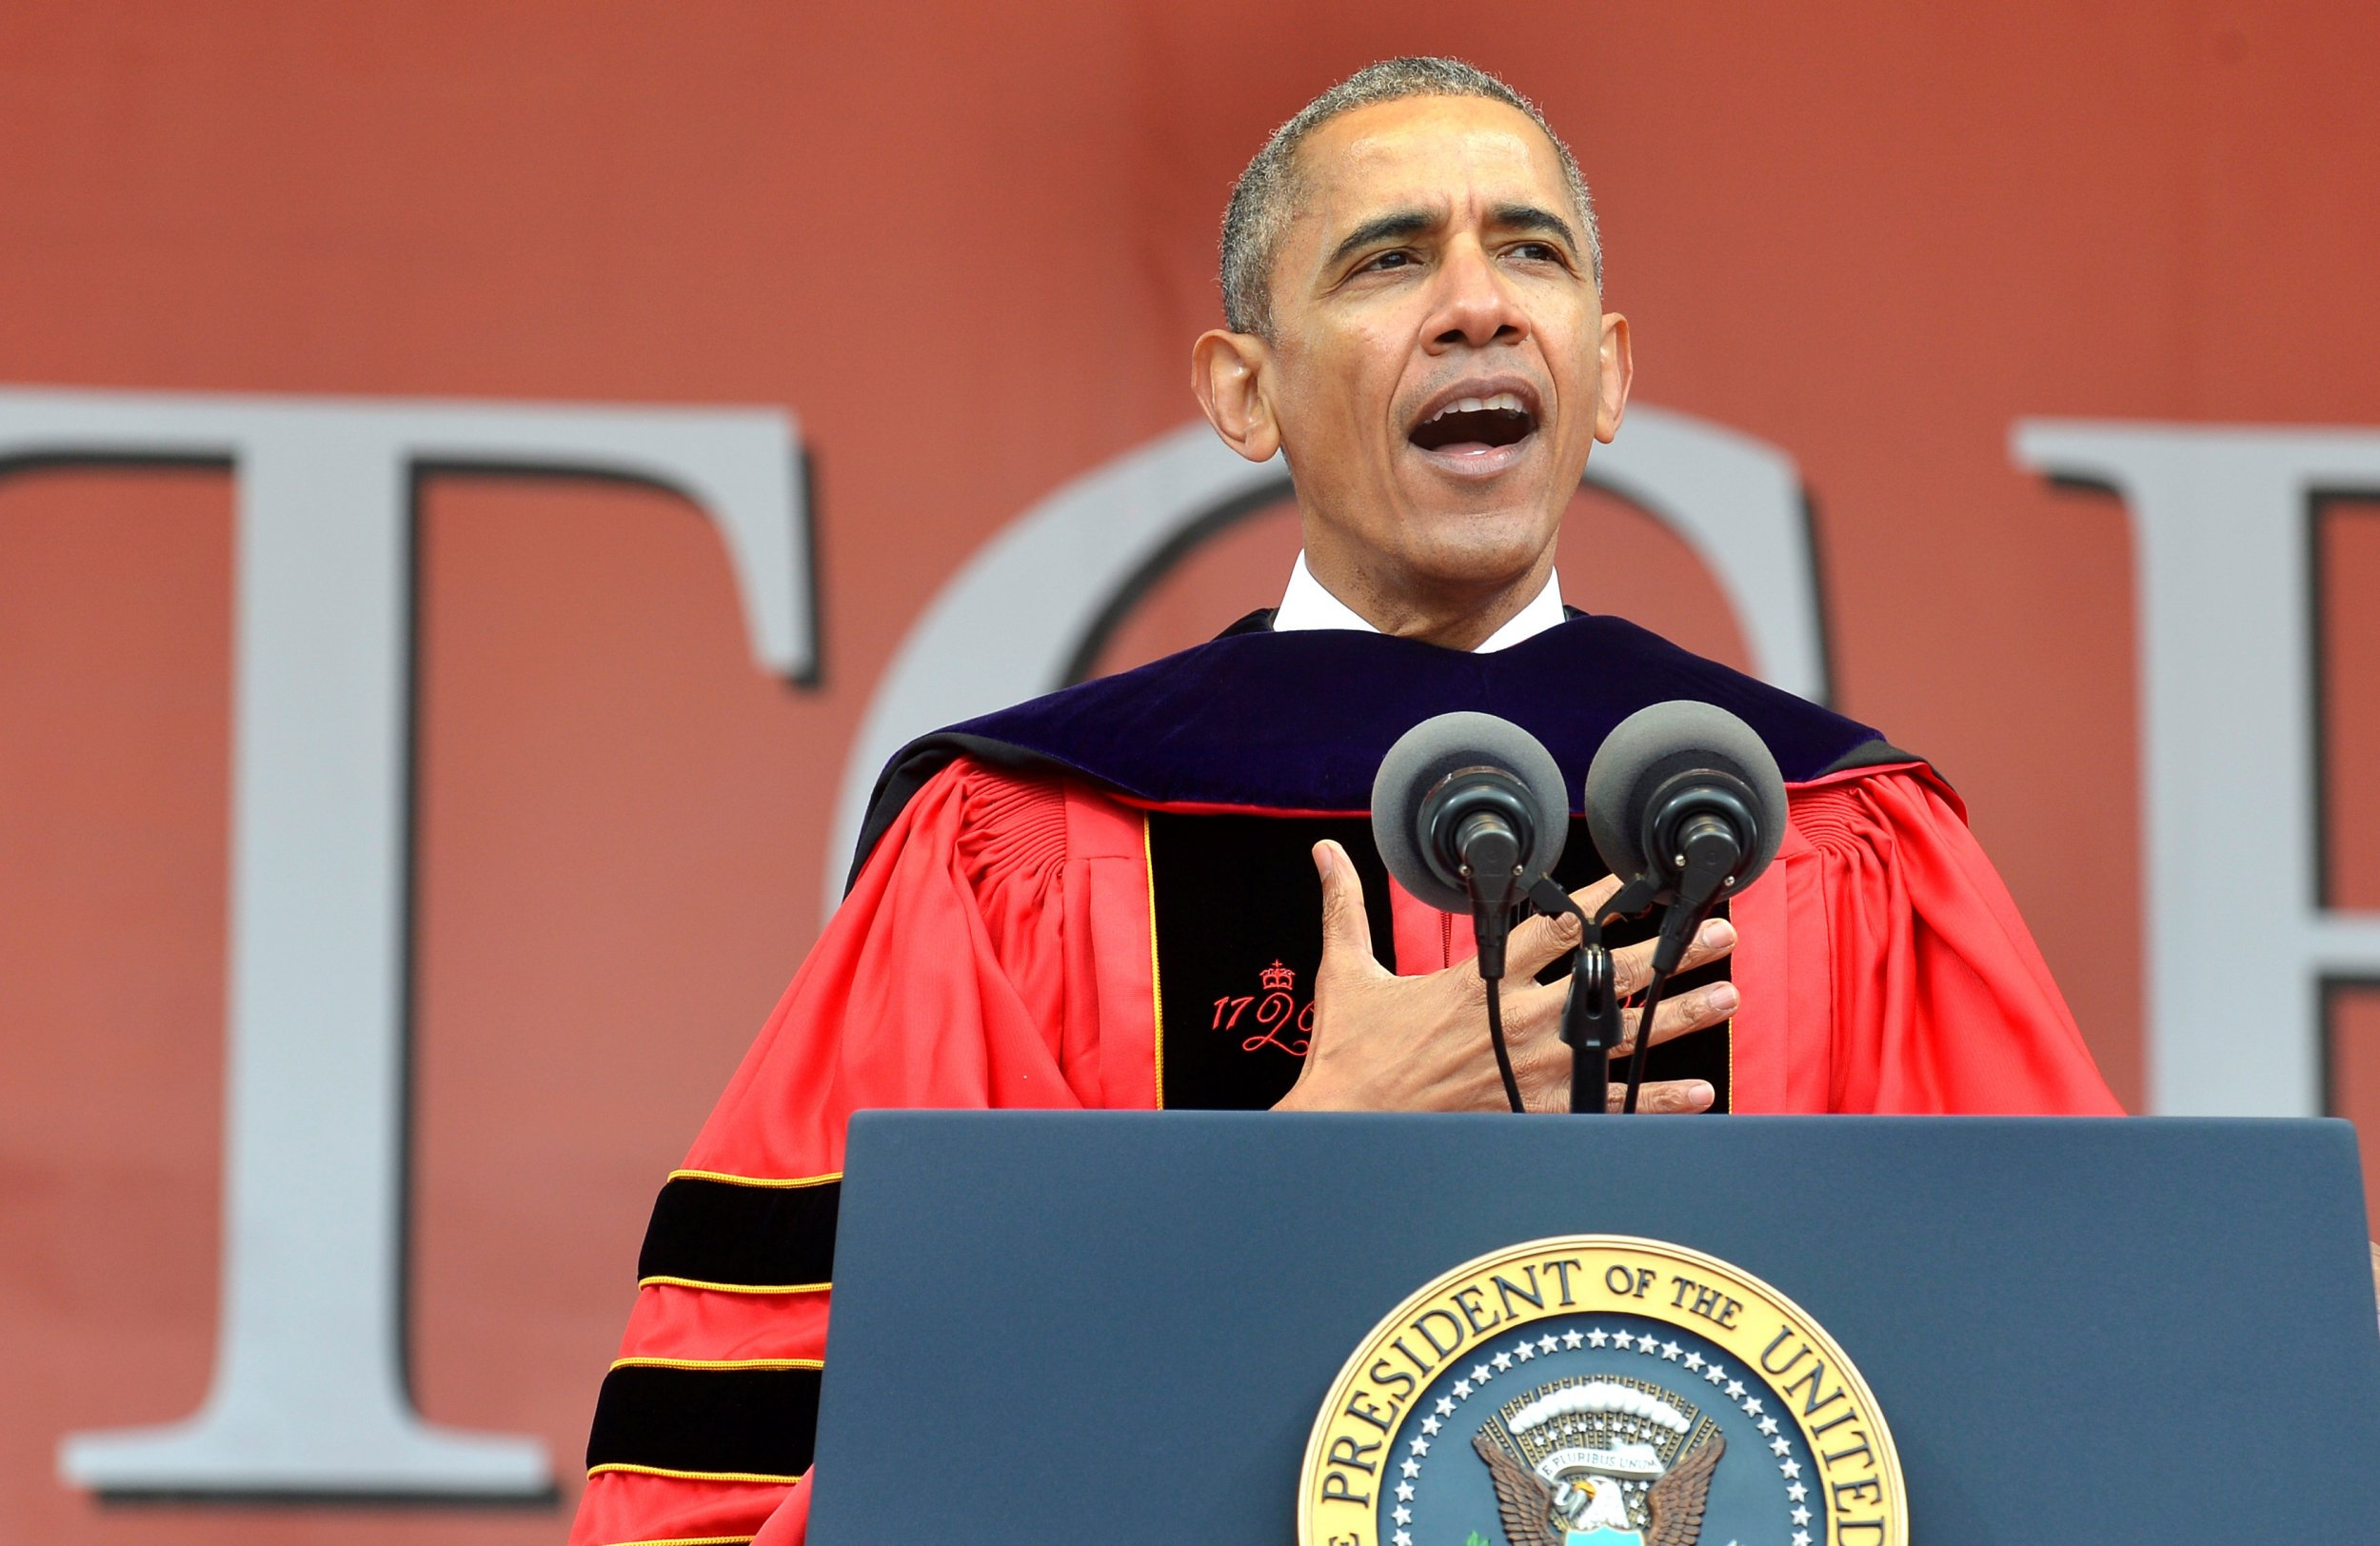 0516_Obama_Rutgers_University_commencement_01